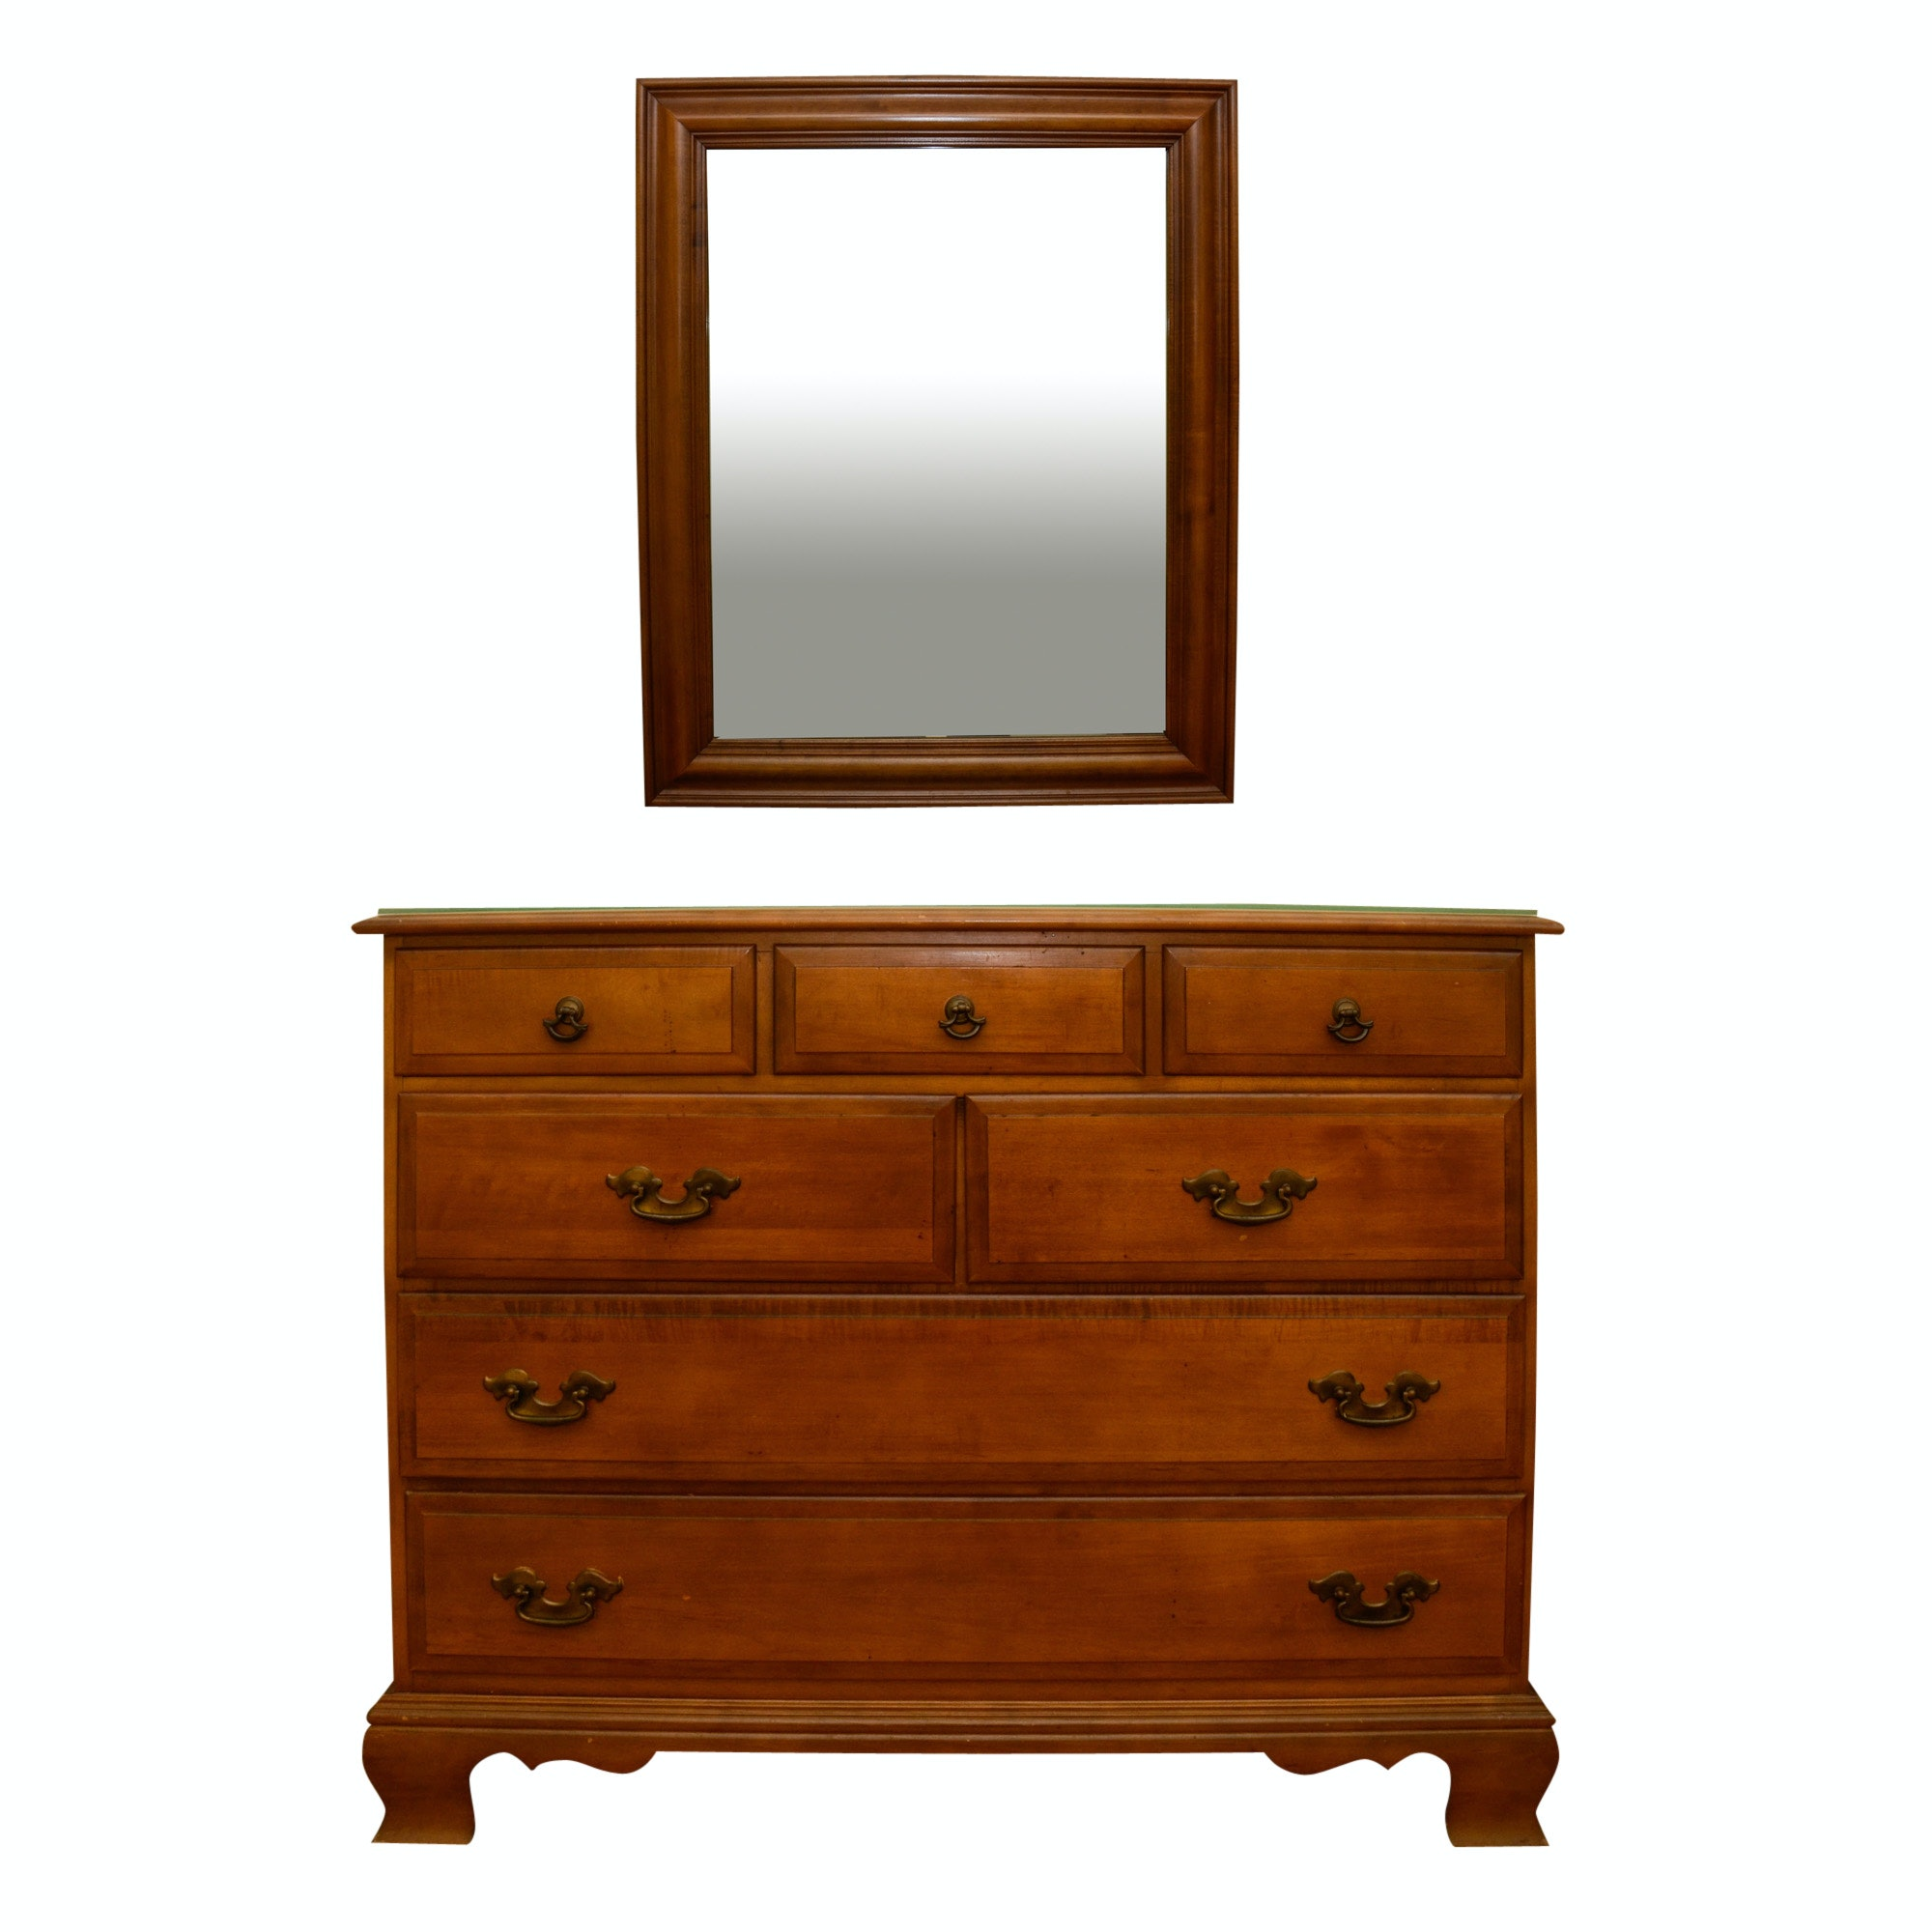 Vintage Colonial Style Maple Chest of Drawers with Mirror by Sumter Cabinet Co.